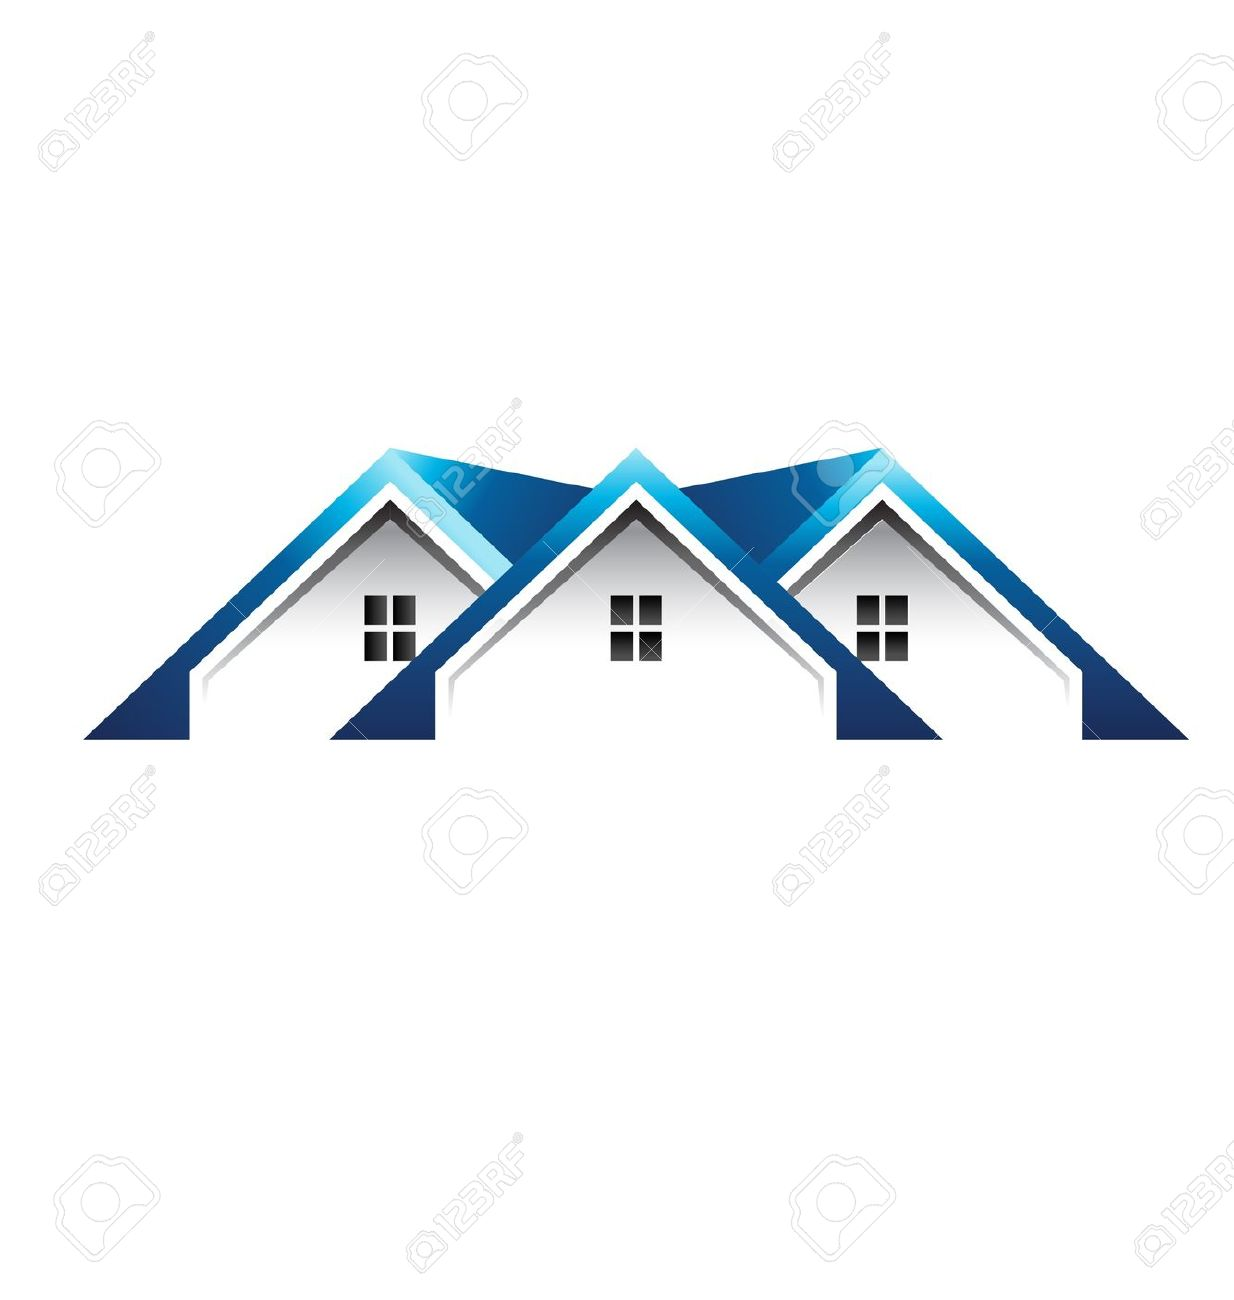 Roof Houses Royalty Free Cliparts, Vectors, And Stock Illustration.